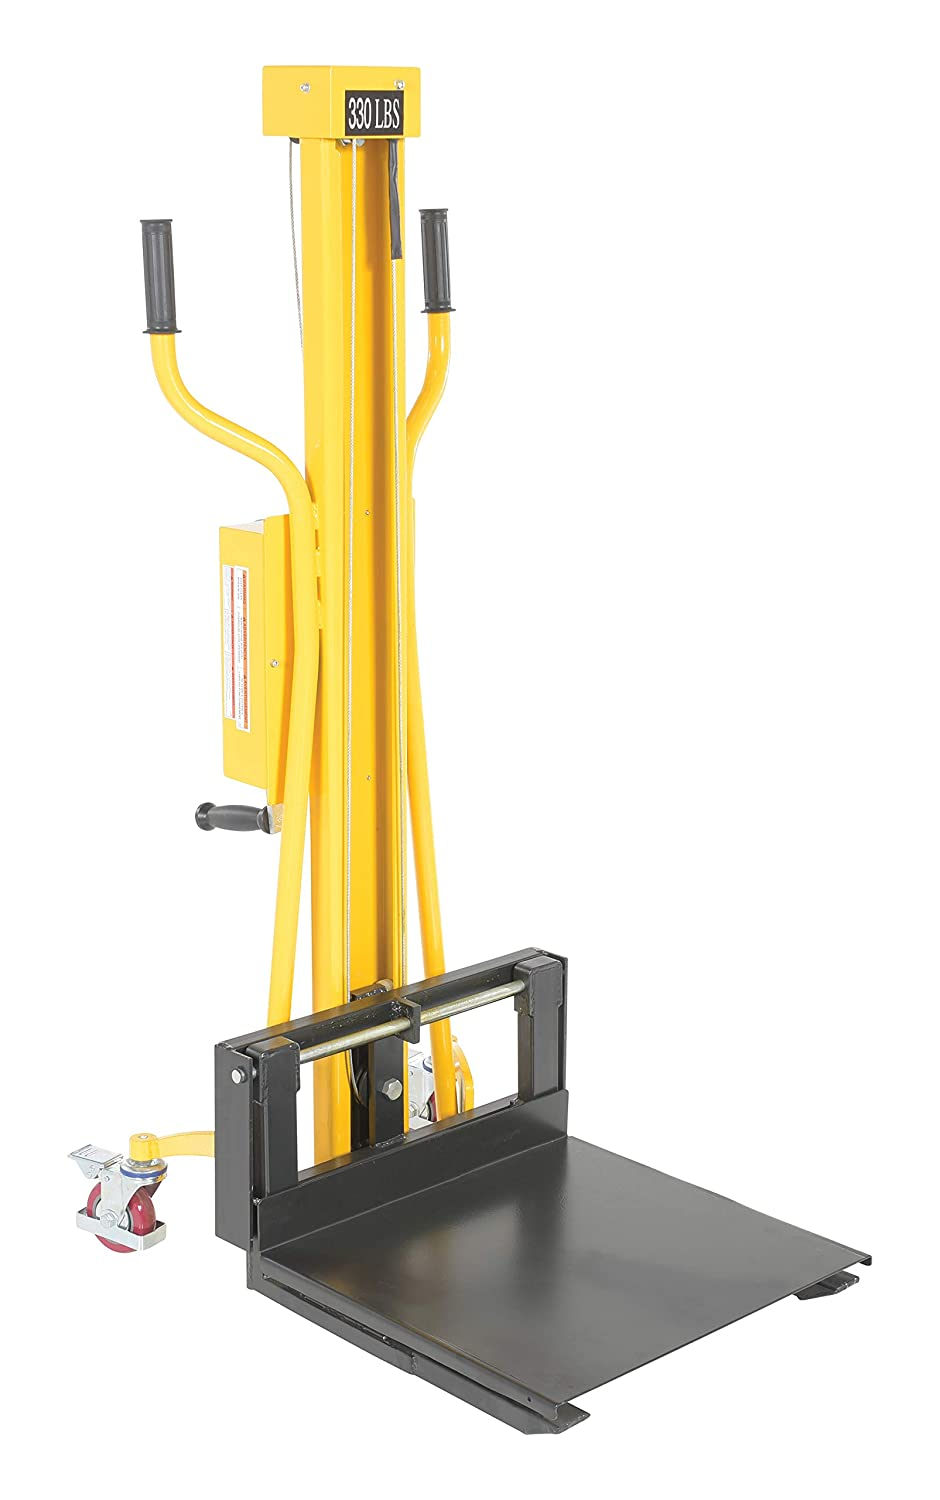 "Vestil HWL-330 Portable Hand Winch Lifter, 31-1/4"" Length, 22-1/4"" Width, 58-1/2"" Height, 330 lbs Capacity"